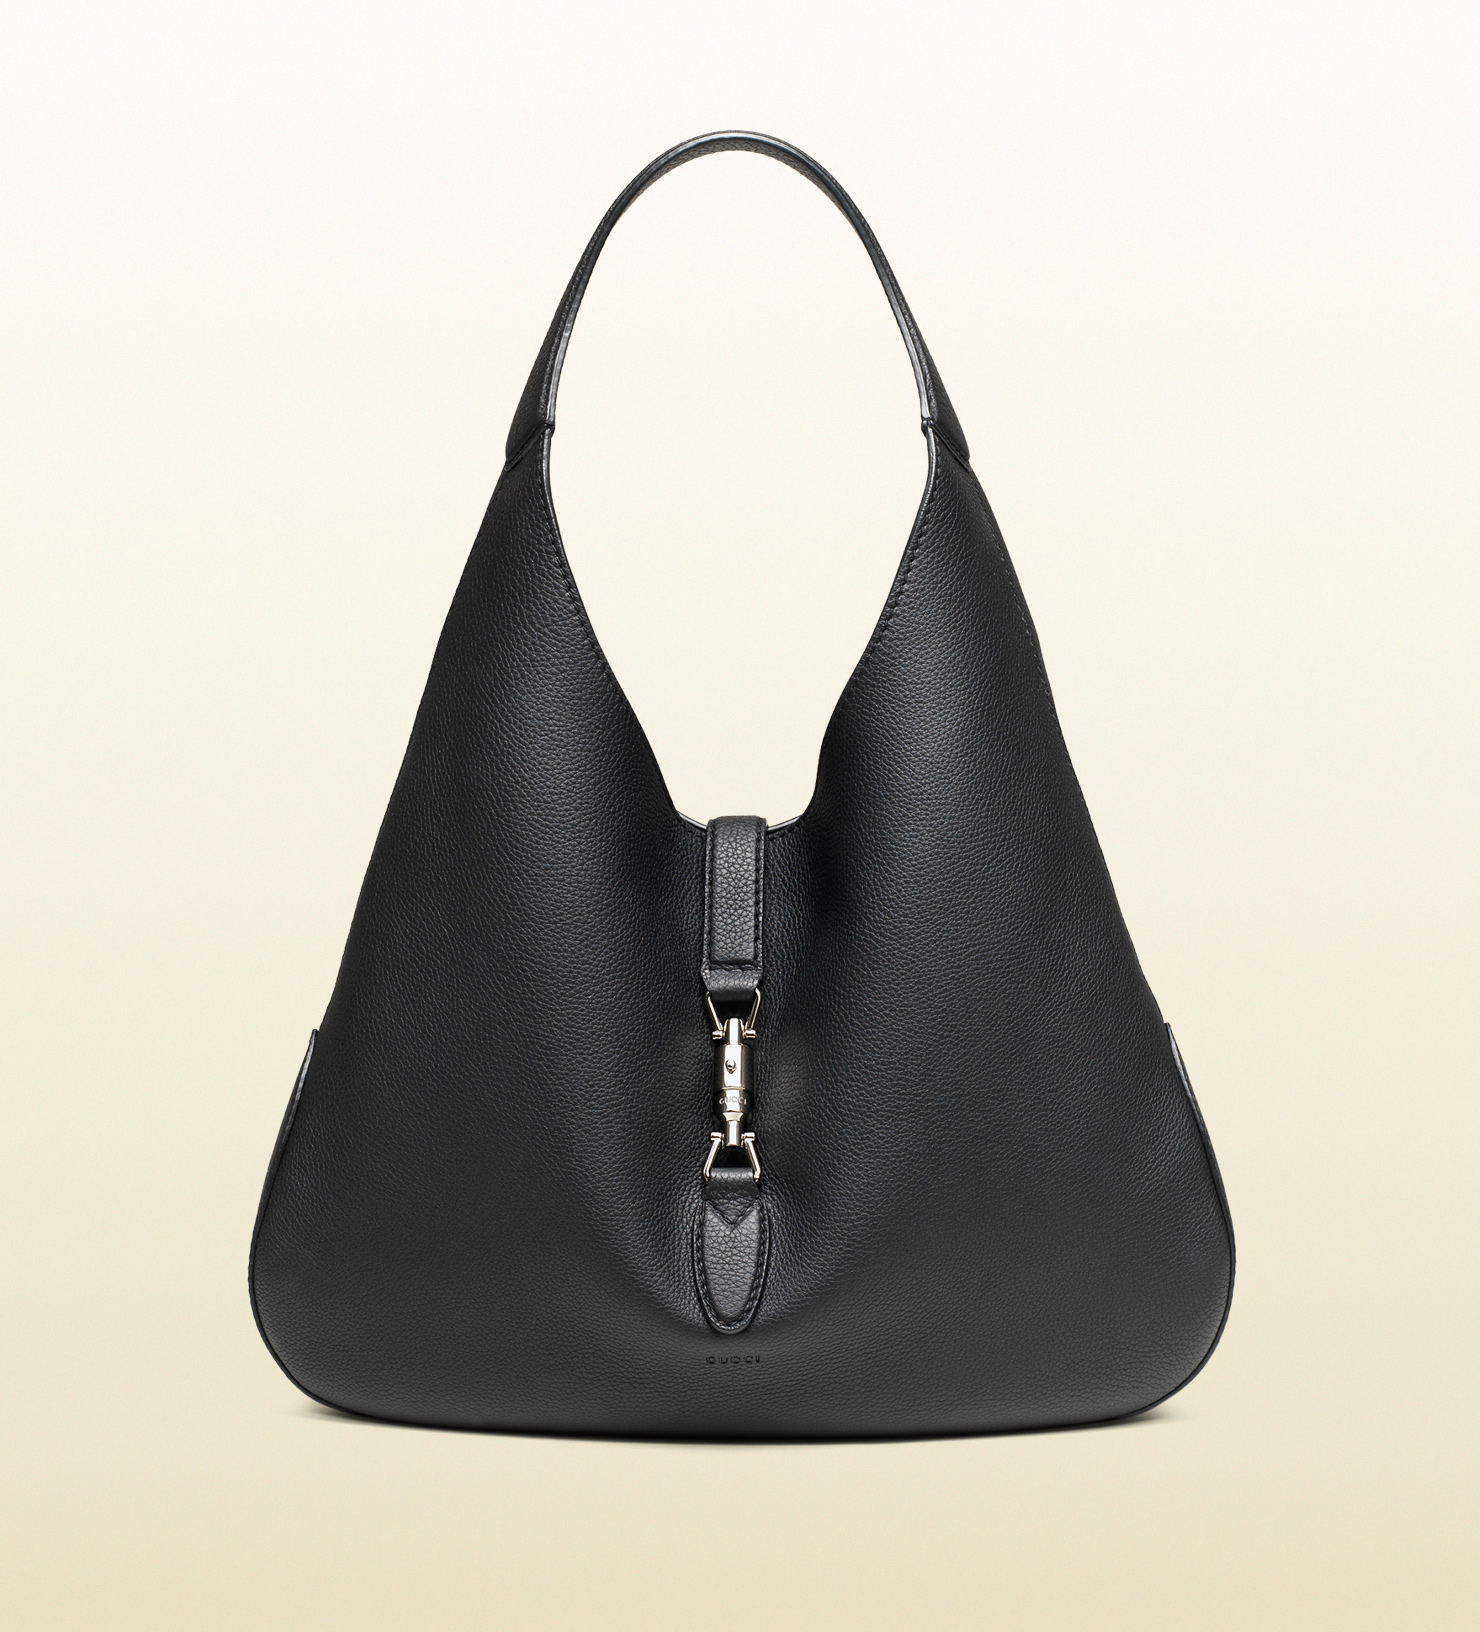 Lyst - Gucci Jackie Soft Leather Hobo in Black